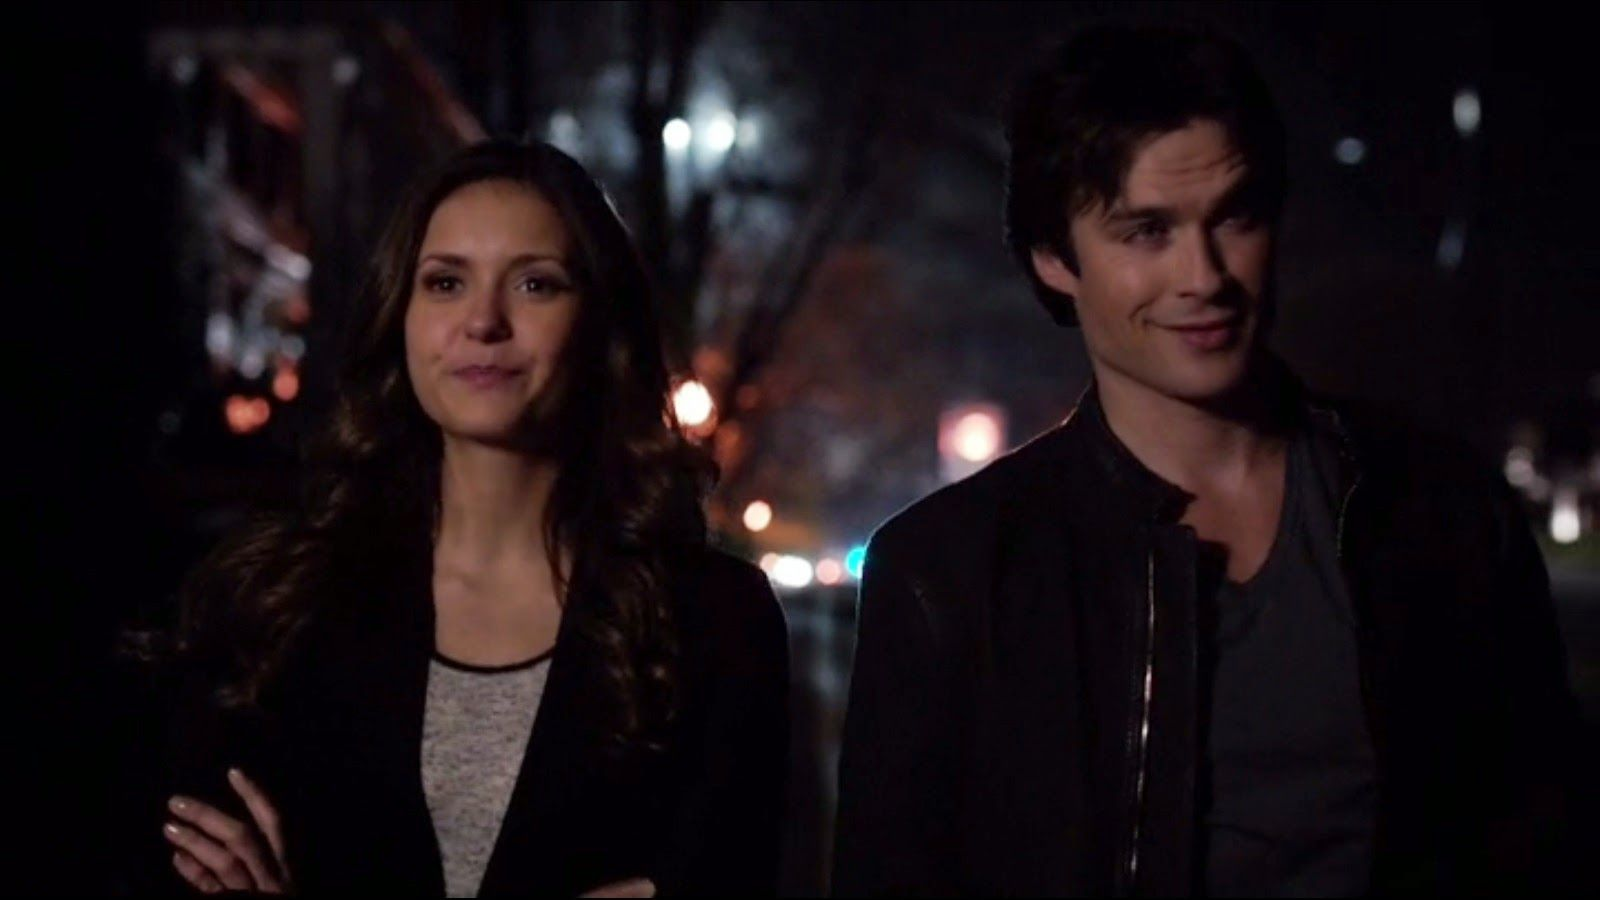 All About Tv shows The Vampire Diaries Season 6